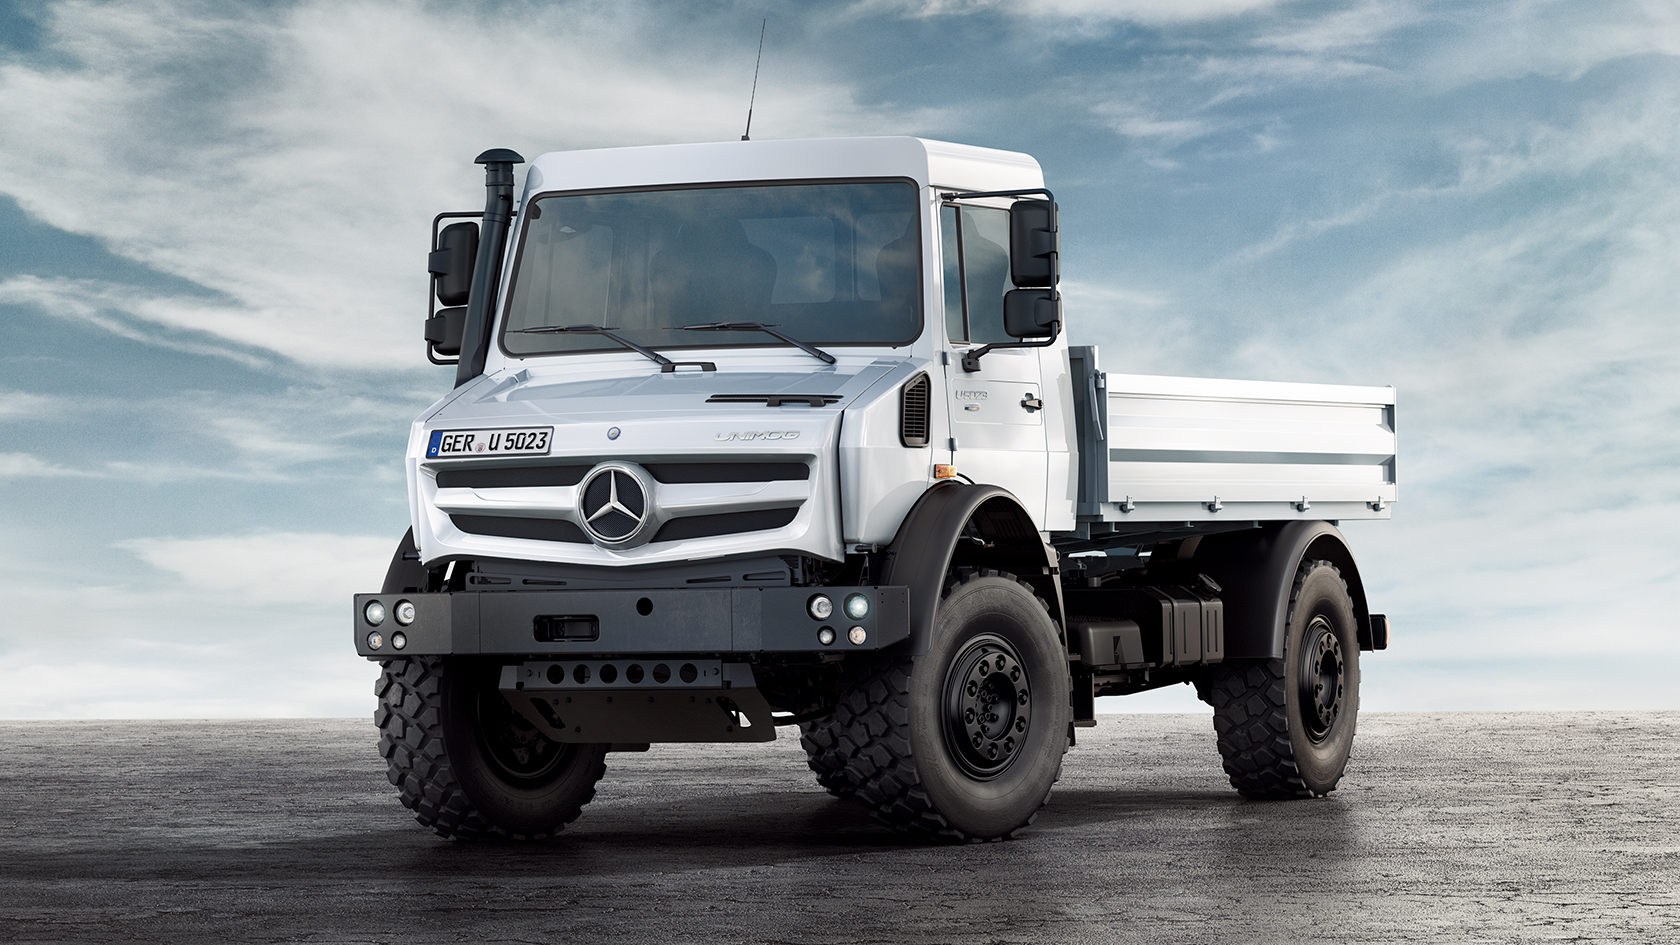 unimog u 4023 u 5023 mercedes benz trucks uk. Black Bedroom Furniture Sets. Home Design Ideas